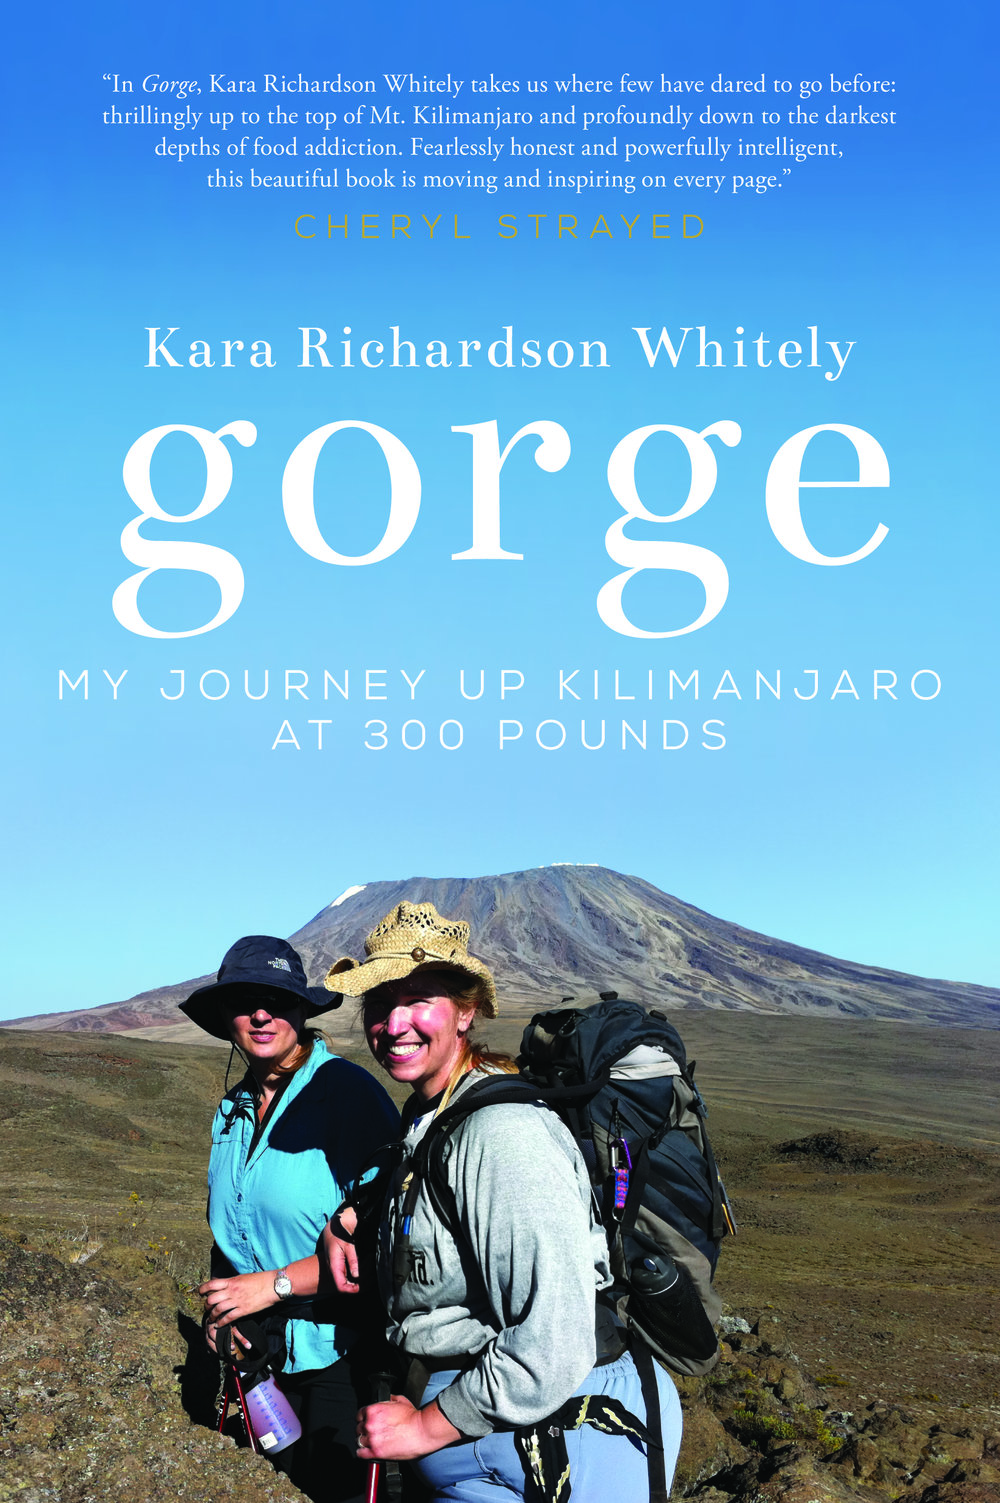 Buy Gorge: My Journey Up Kilimanjaro at 300 Pounds